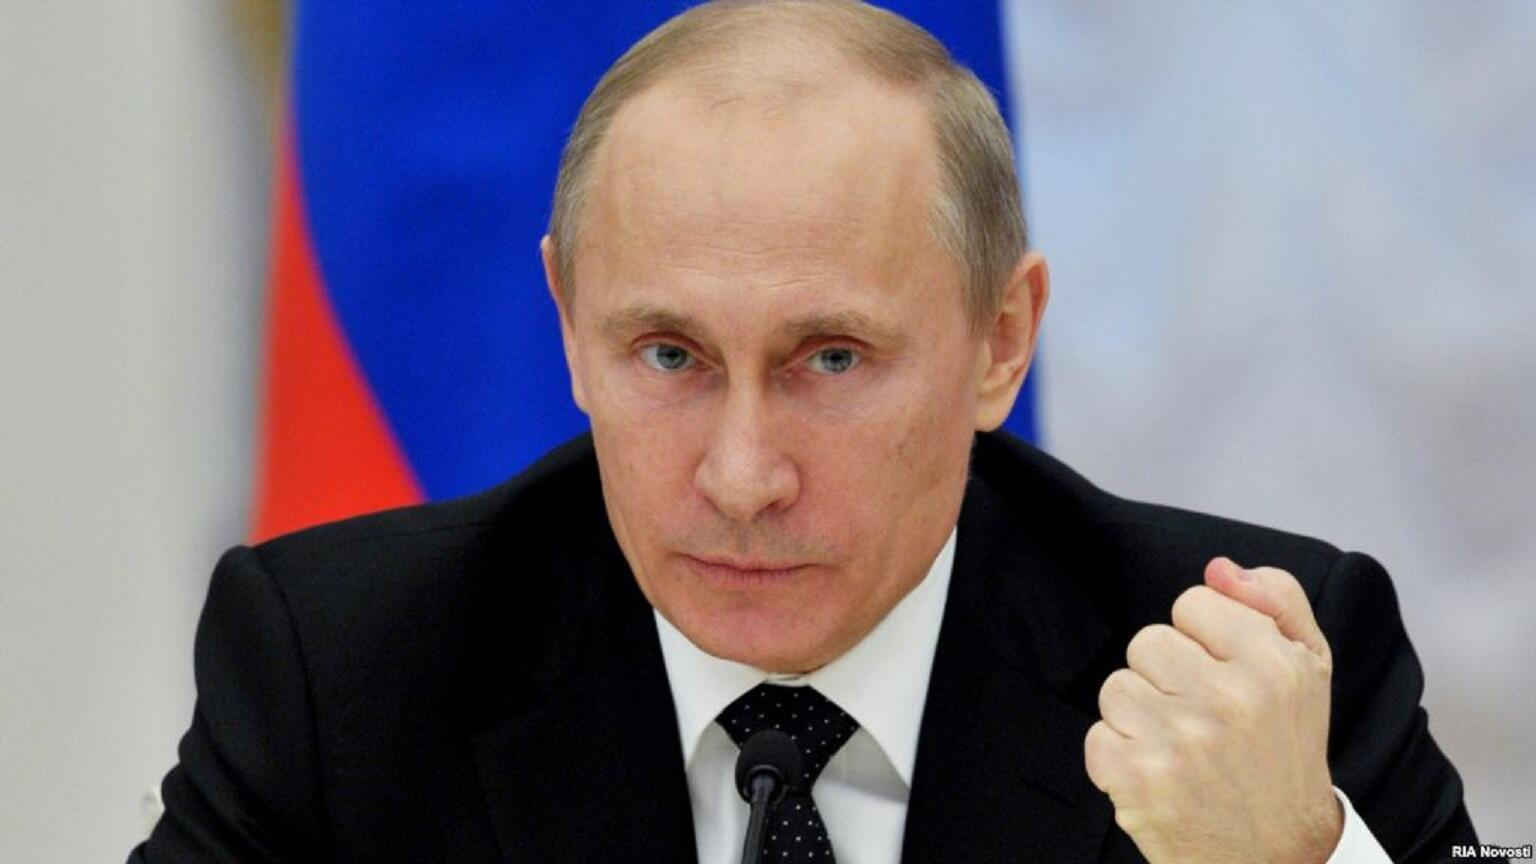 Putin called for Israeli-Palestinian tensions